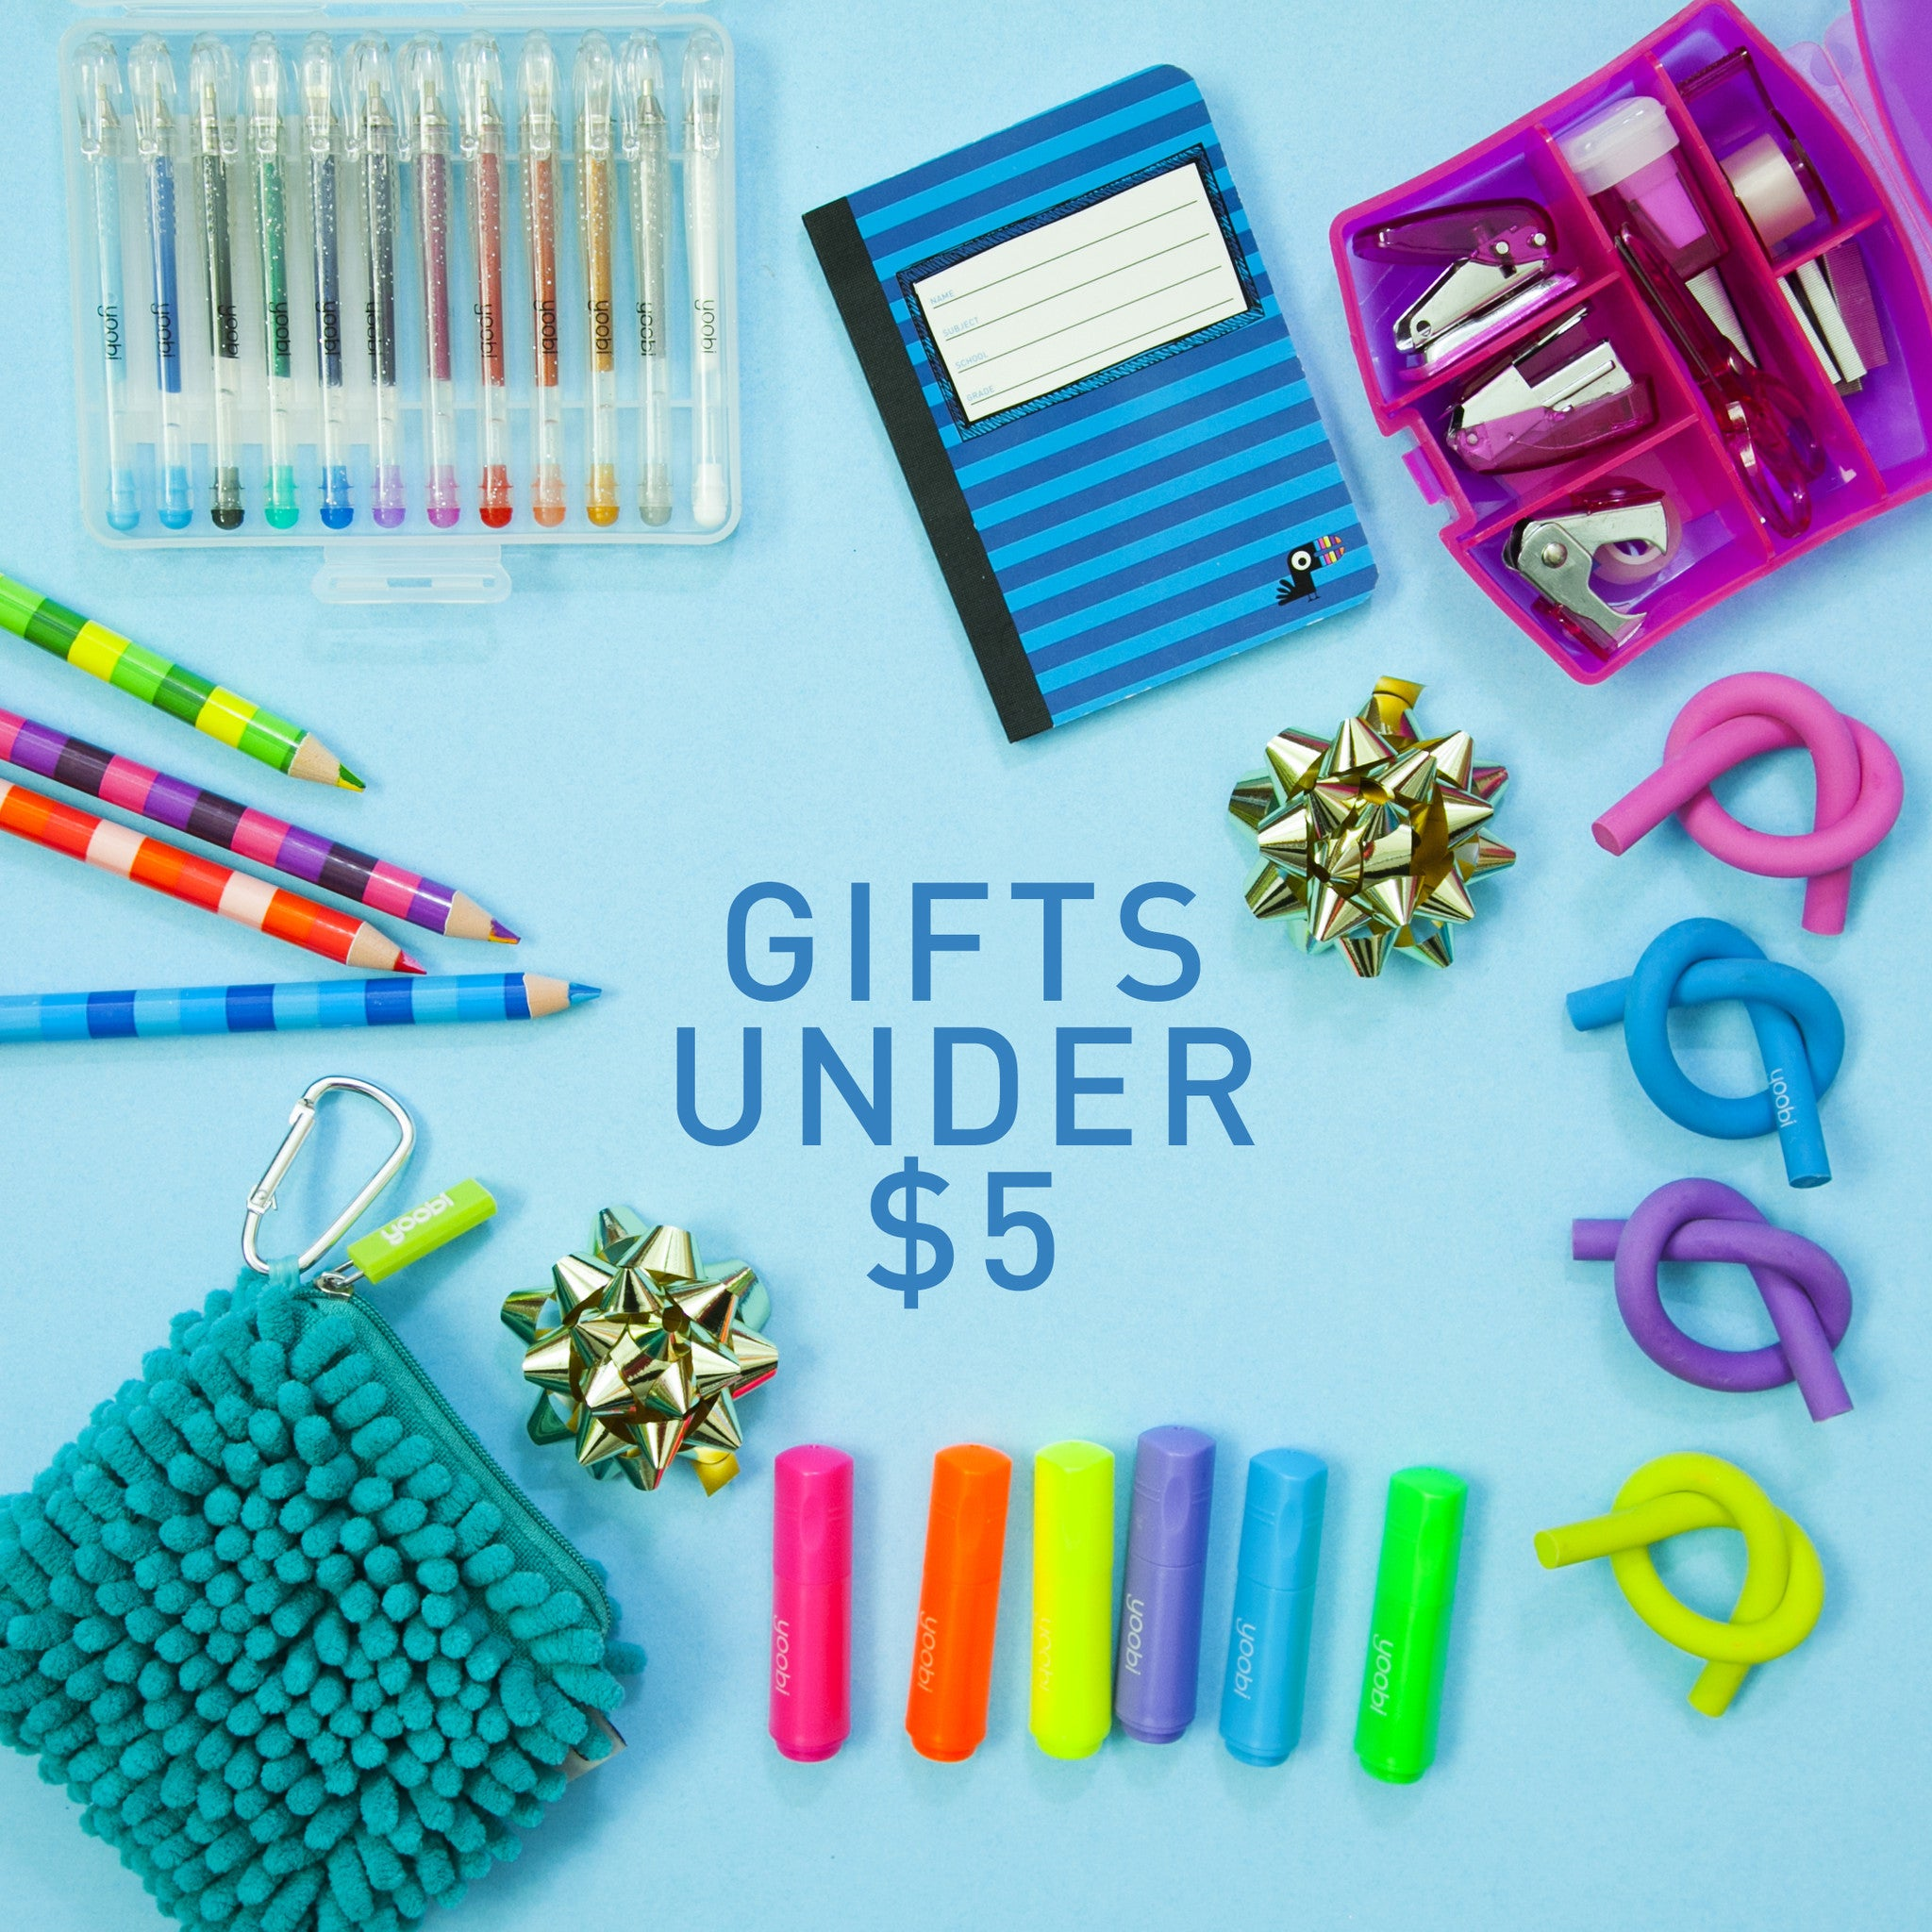 Top 5 Holiday Gifts Under $5 with Yoobi